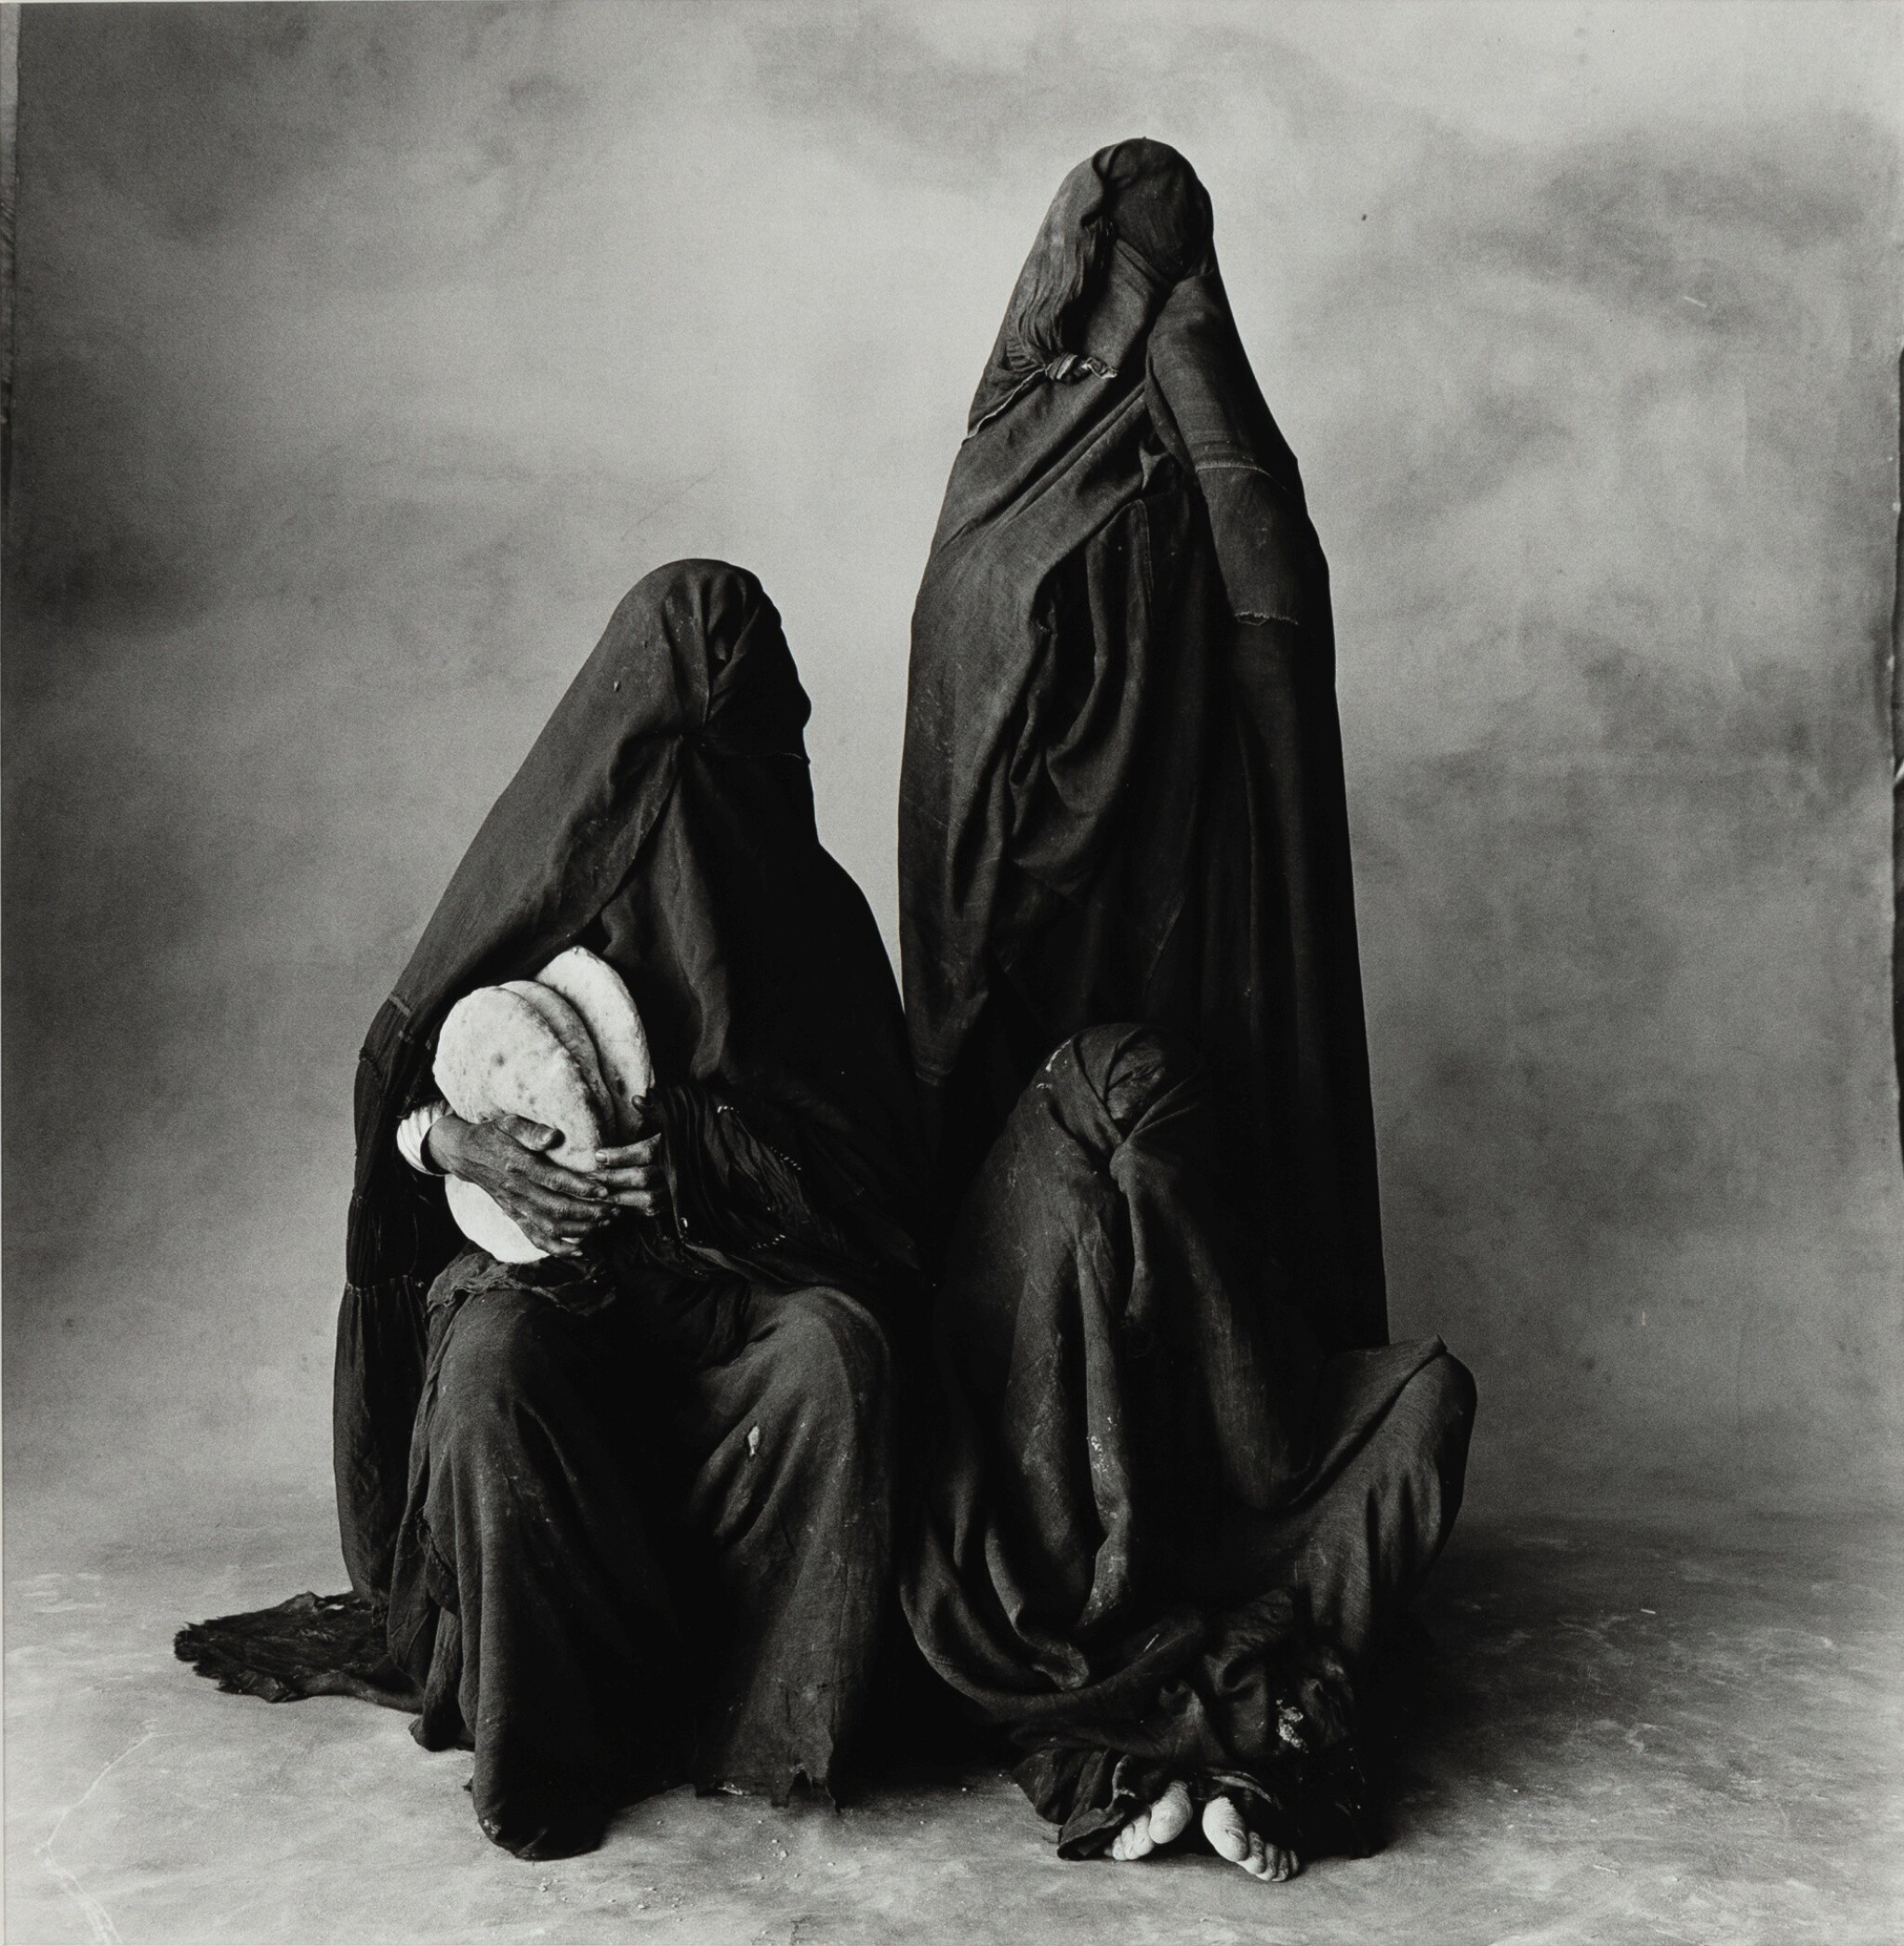 View 1 of Lot 41. IRVING PENN | THREE RISSANI WOMEN WITH BREAD, MOROCCO, 1971.